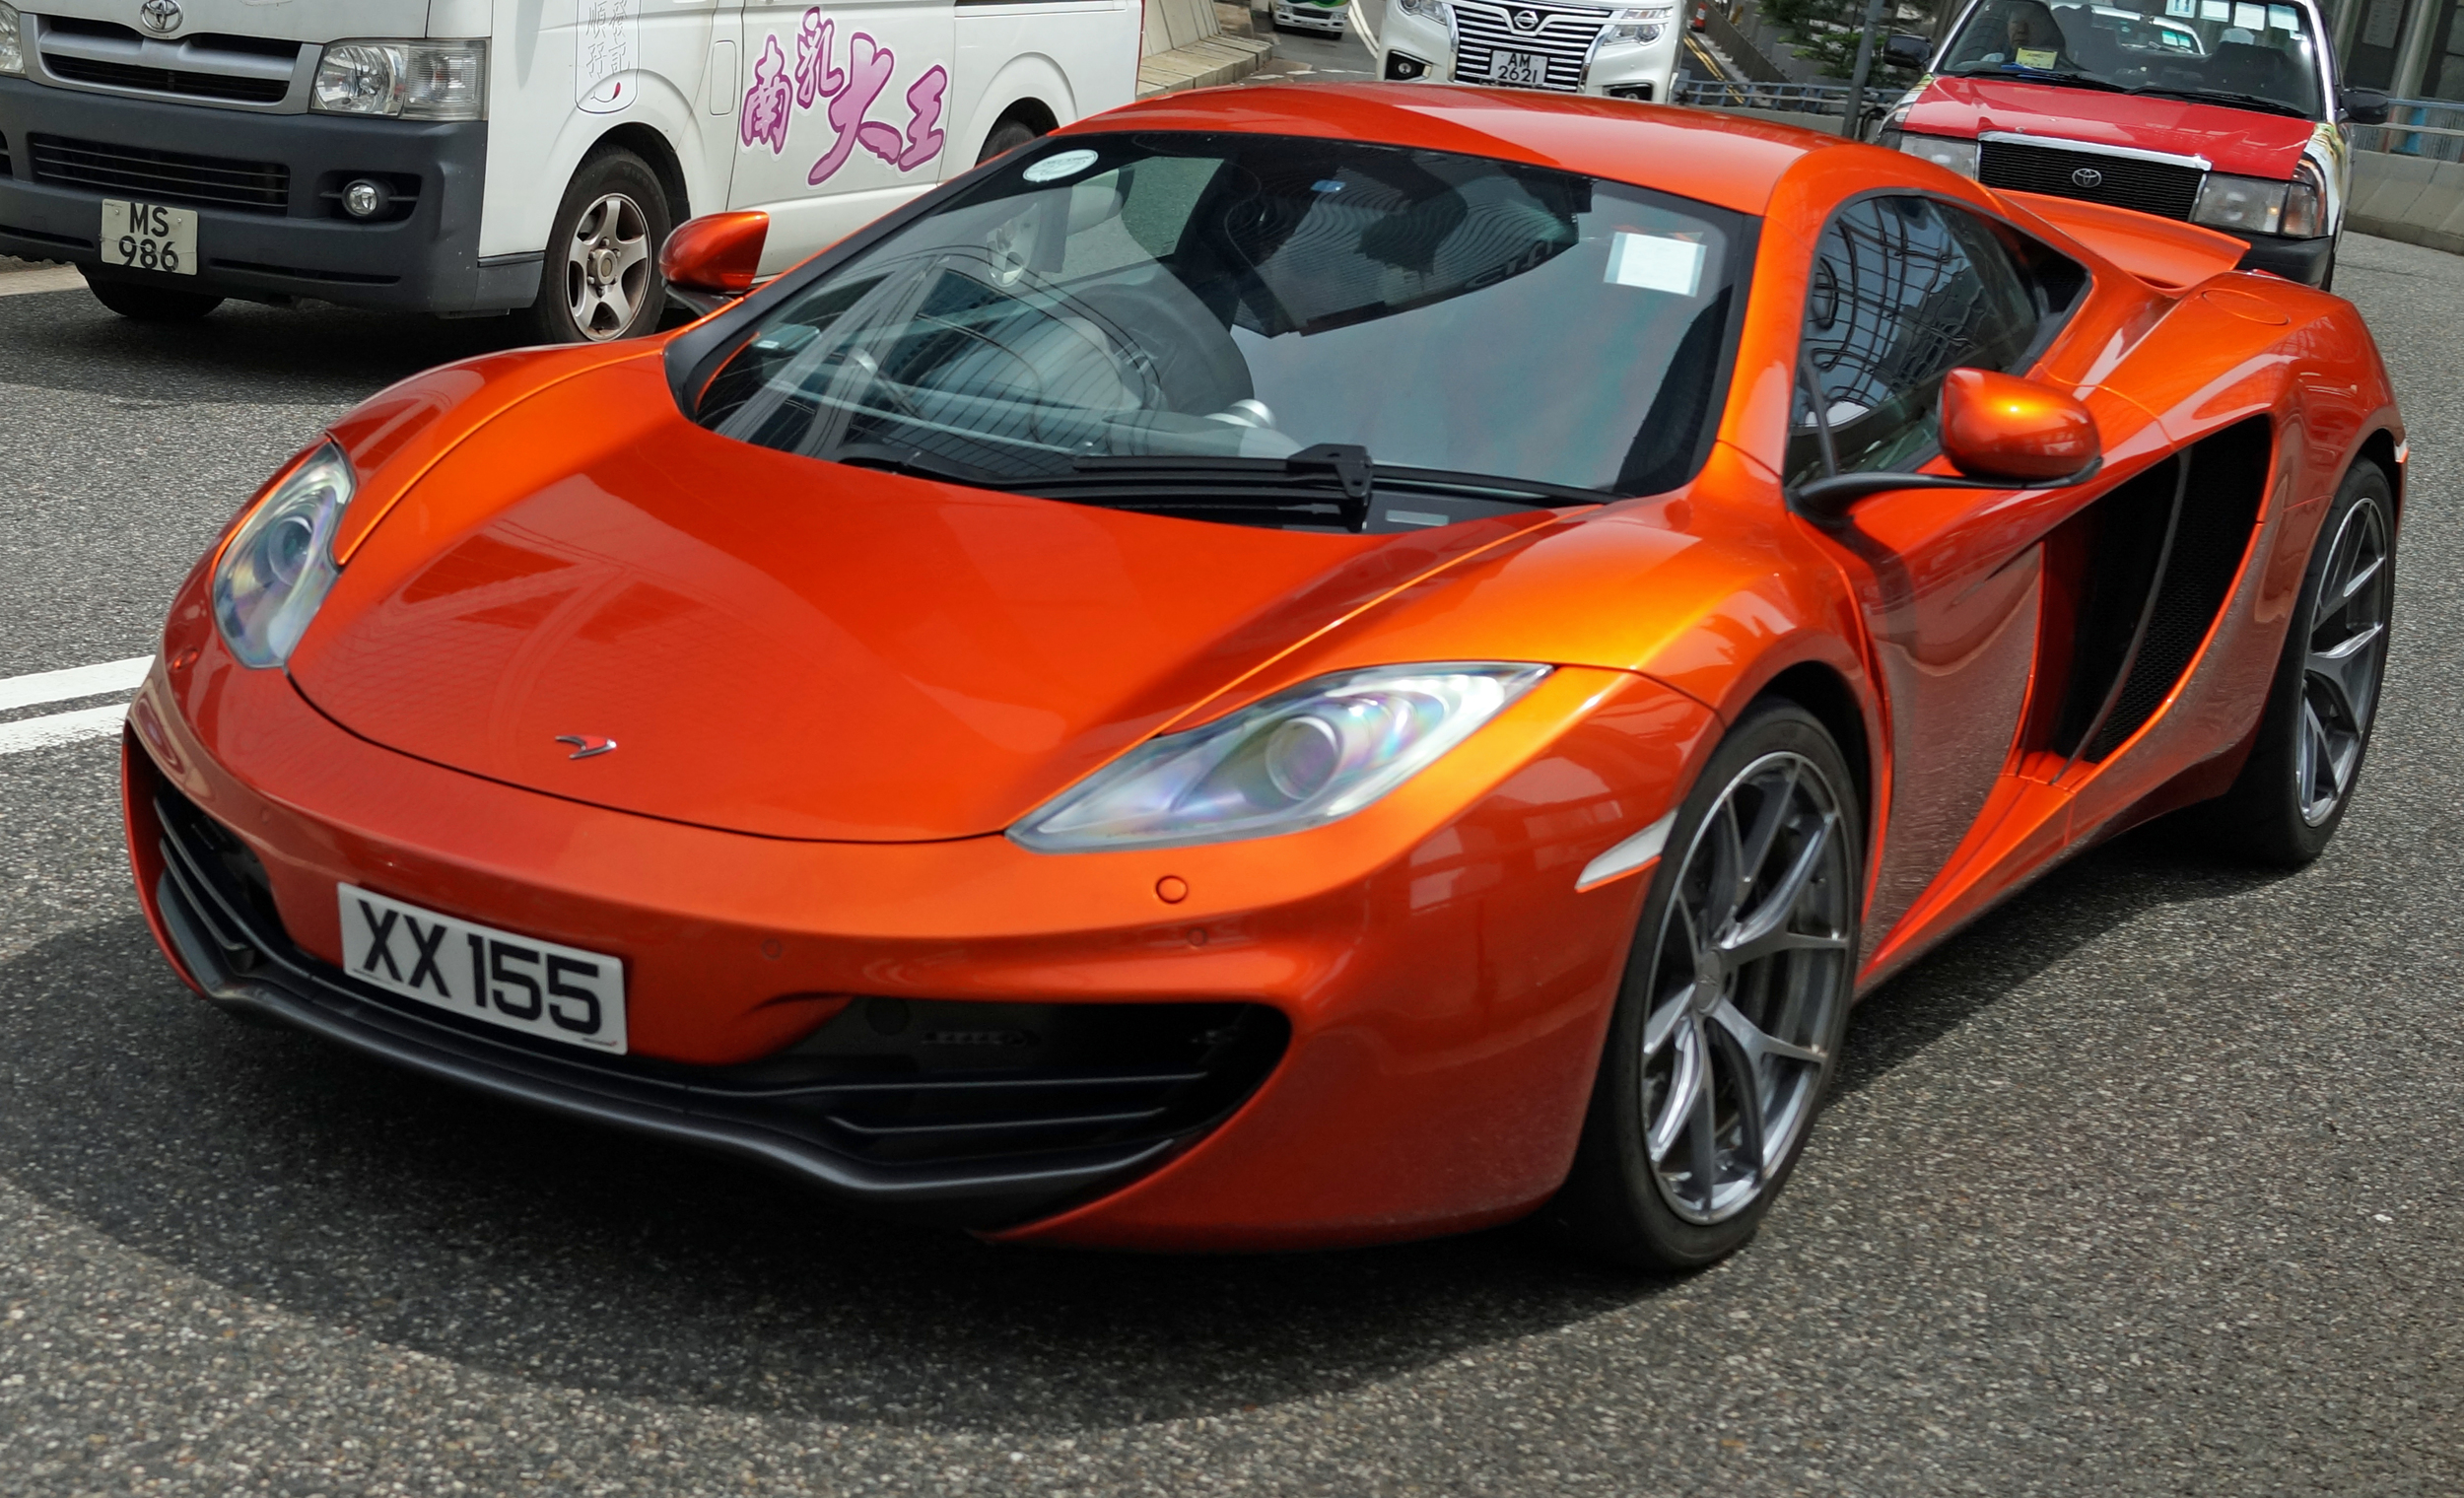 Oh my - this is my favourite McLaren in Hong Kong, I just love the colour